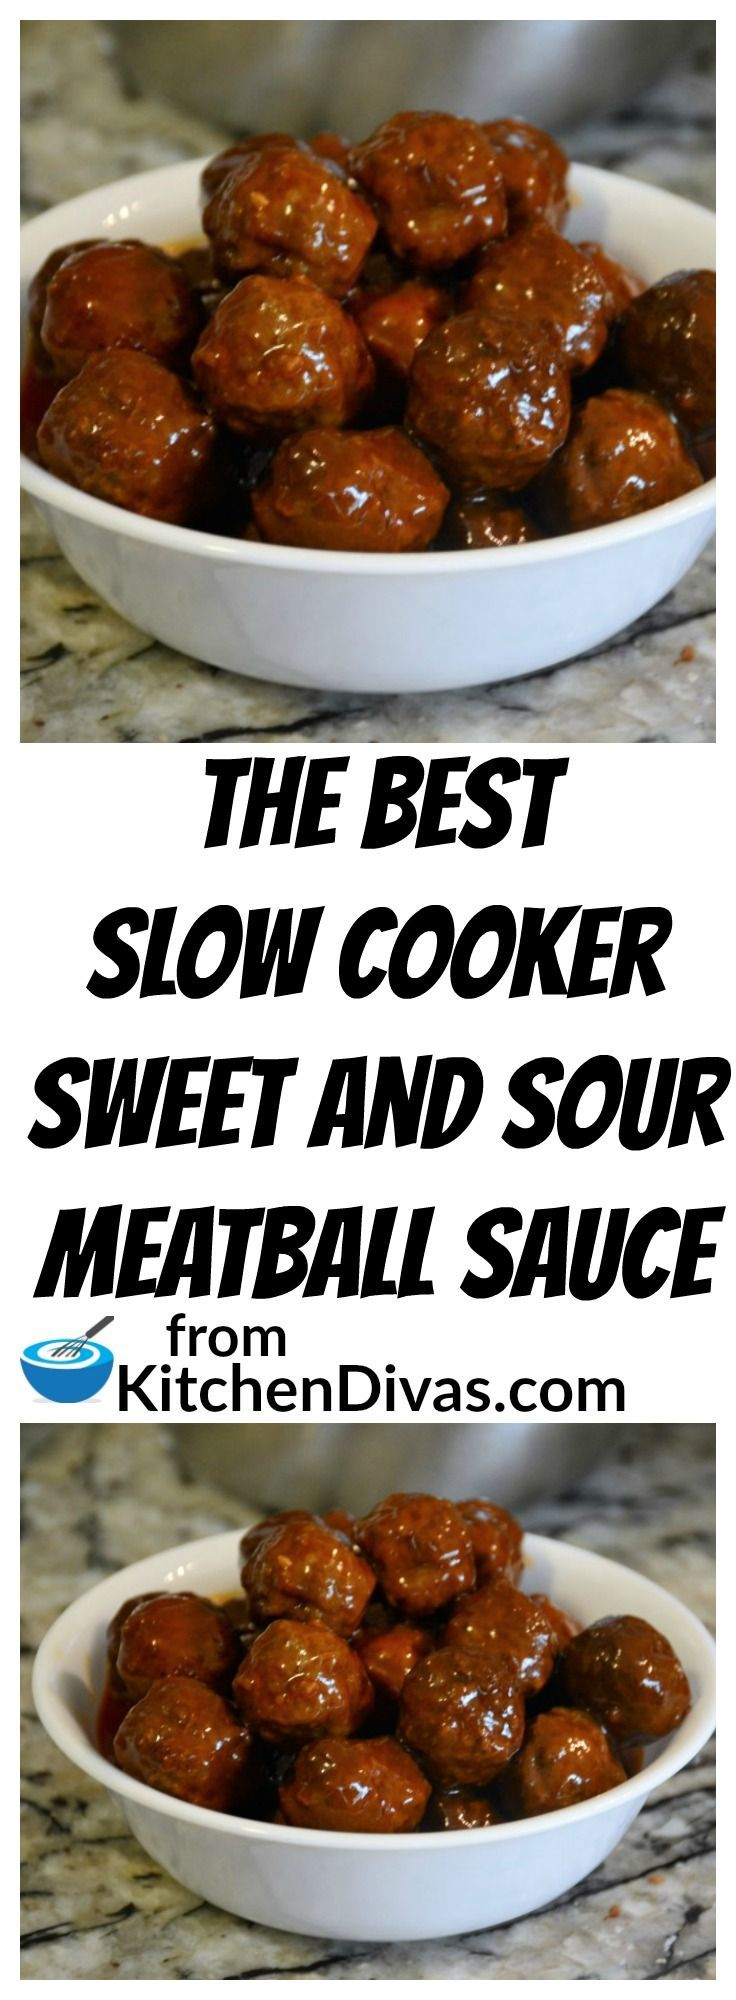 Ken and his buddies play poker once a month and these meatballs are always a huge hit. Sweet and Sour Meatballs are so easy to make. If we have time we make our Perfect Meatballs and if not we buy a large bag of frozen prepared meatballs. Throw it all in the slow cooker and in a few hours total perfection! The sauce is fabulous!